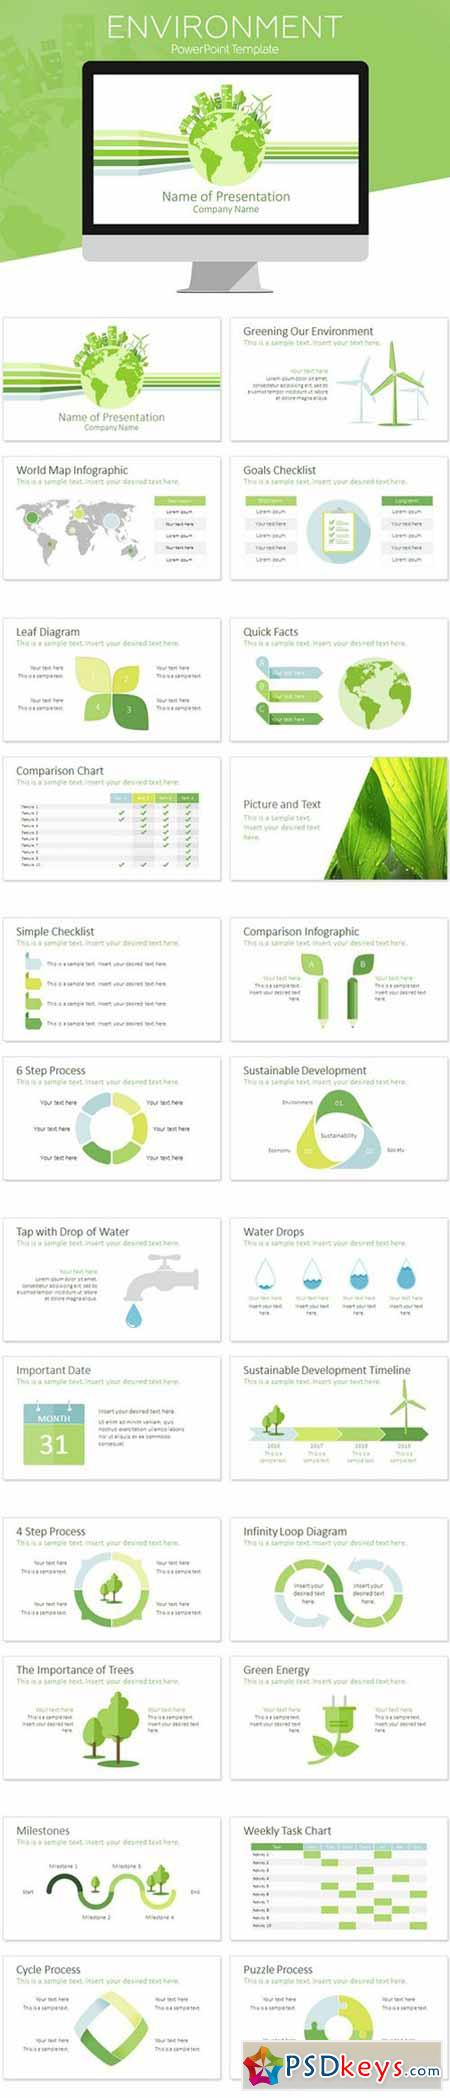 Environment PowerPoint Template 547553